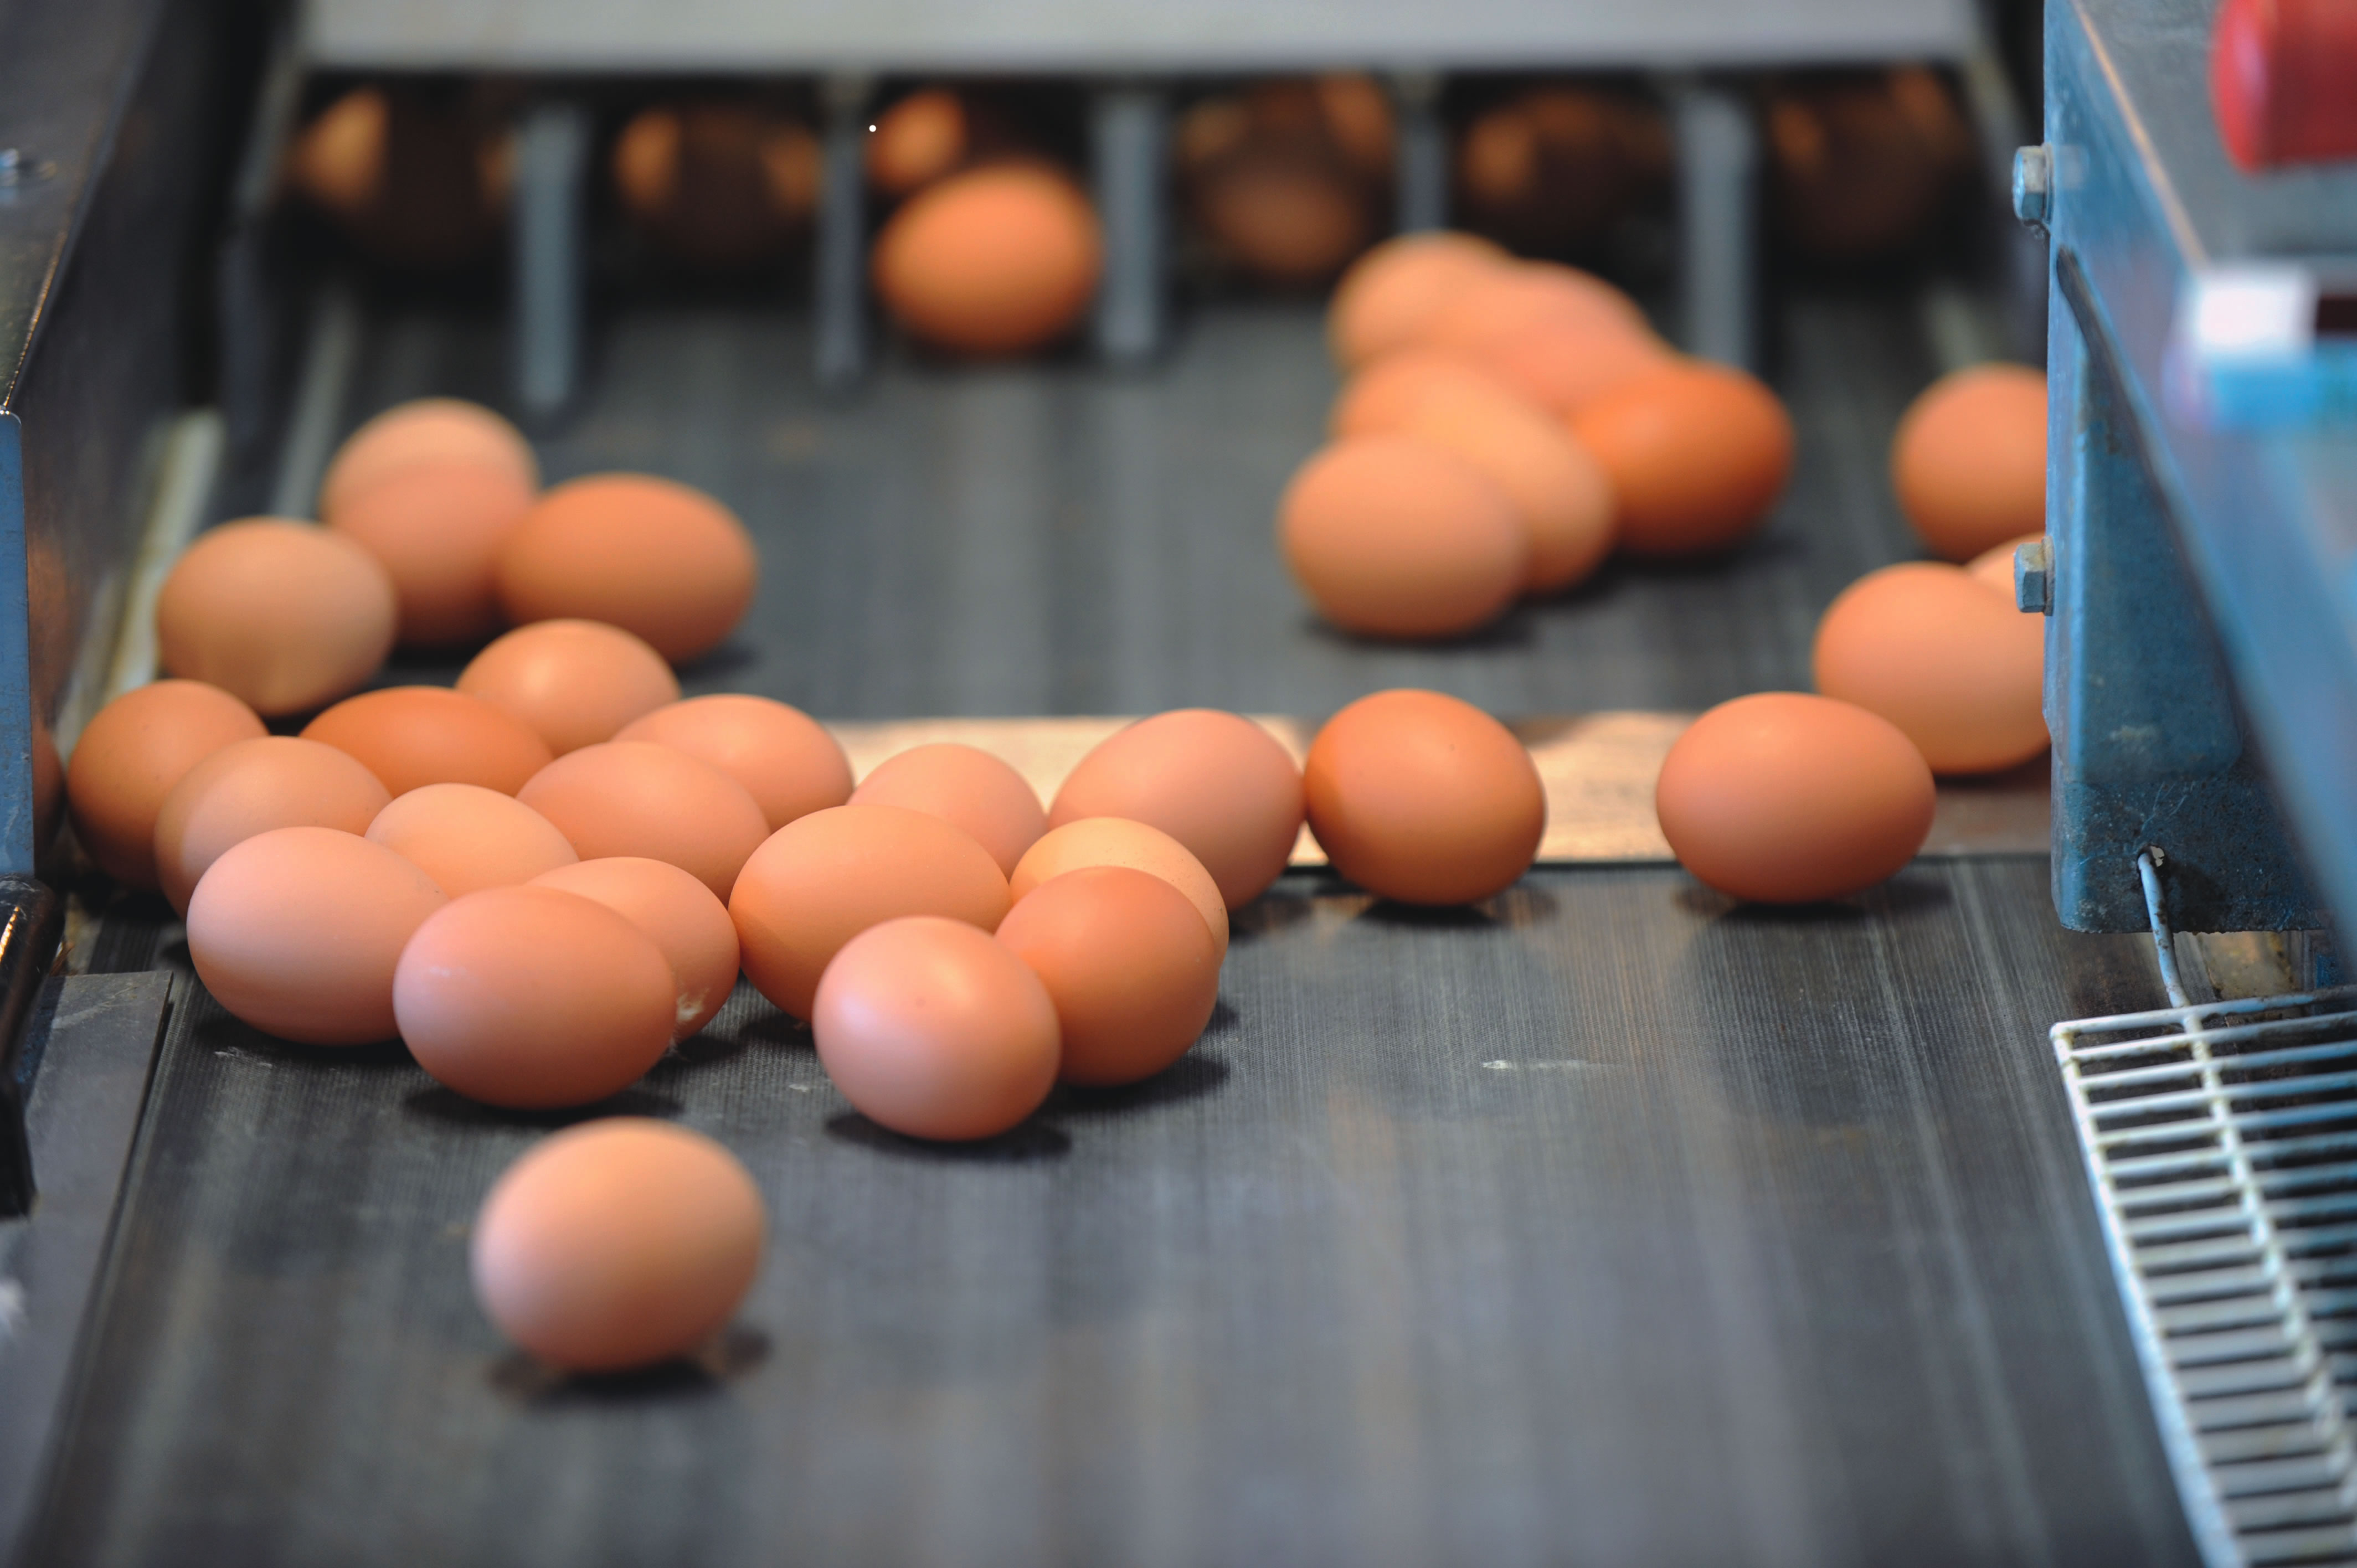 Egg prices rise due to flu | Poultry News